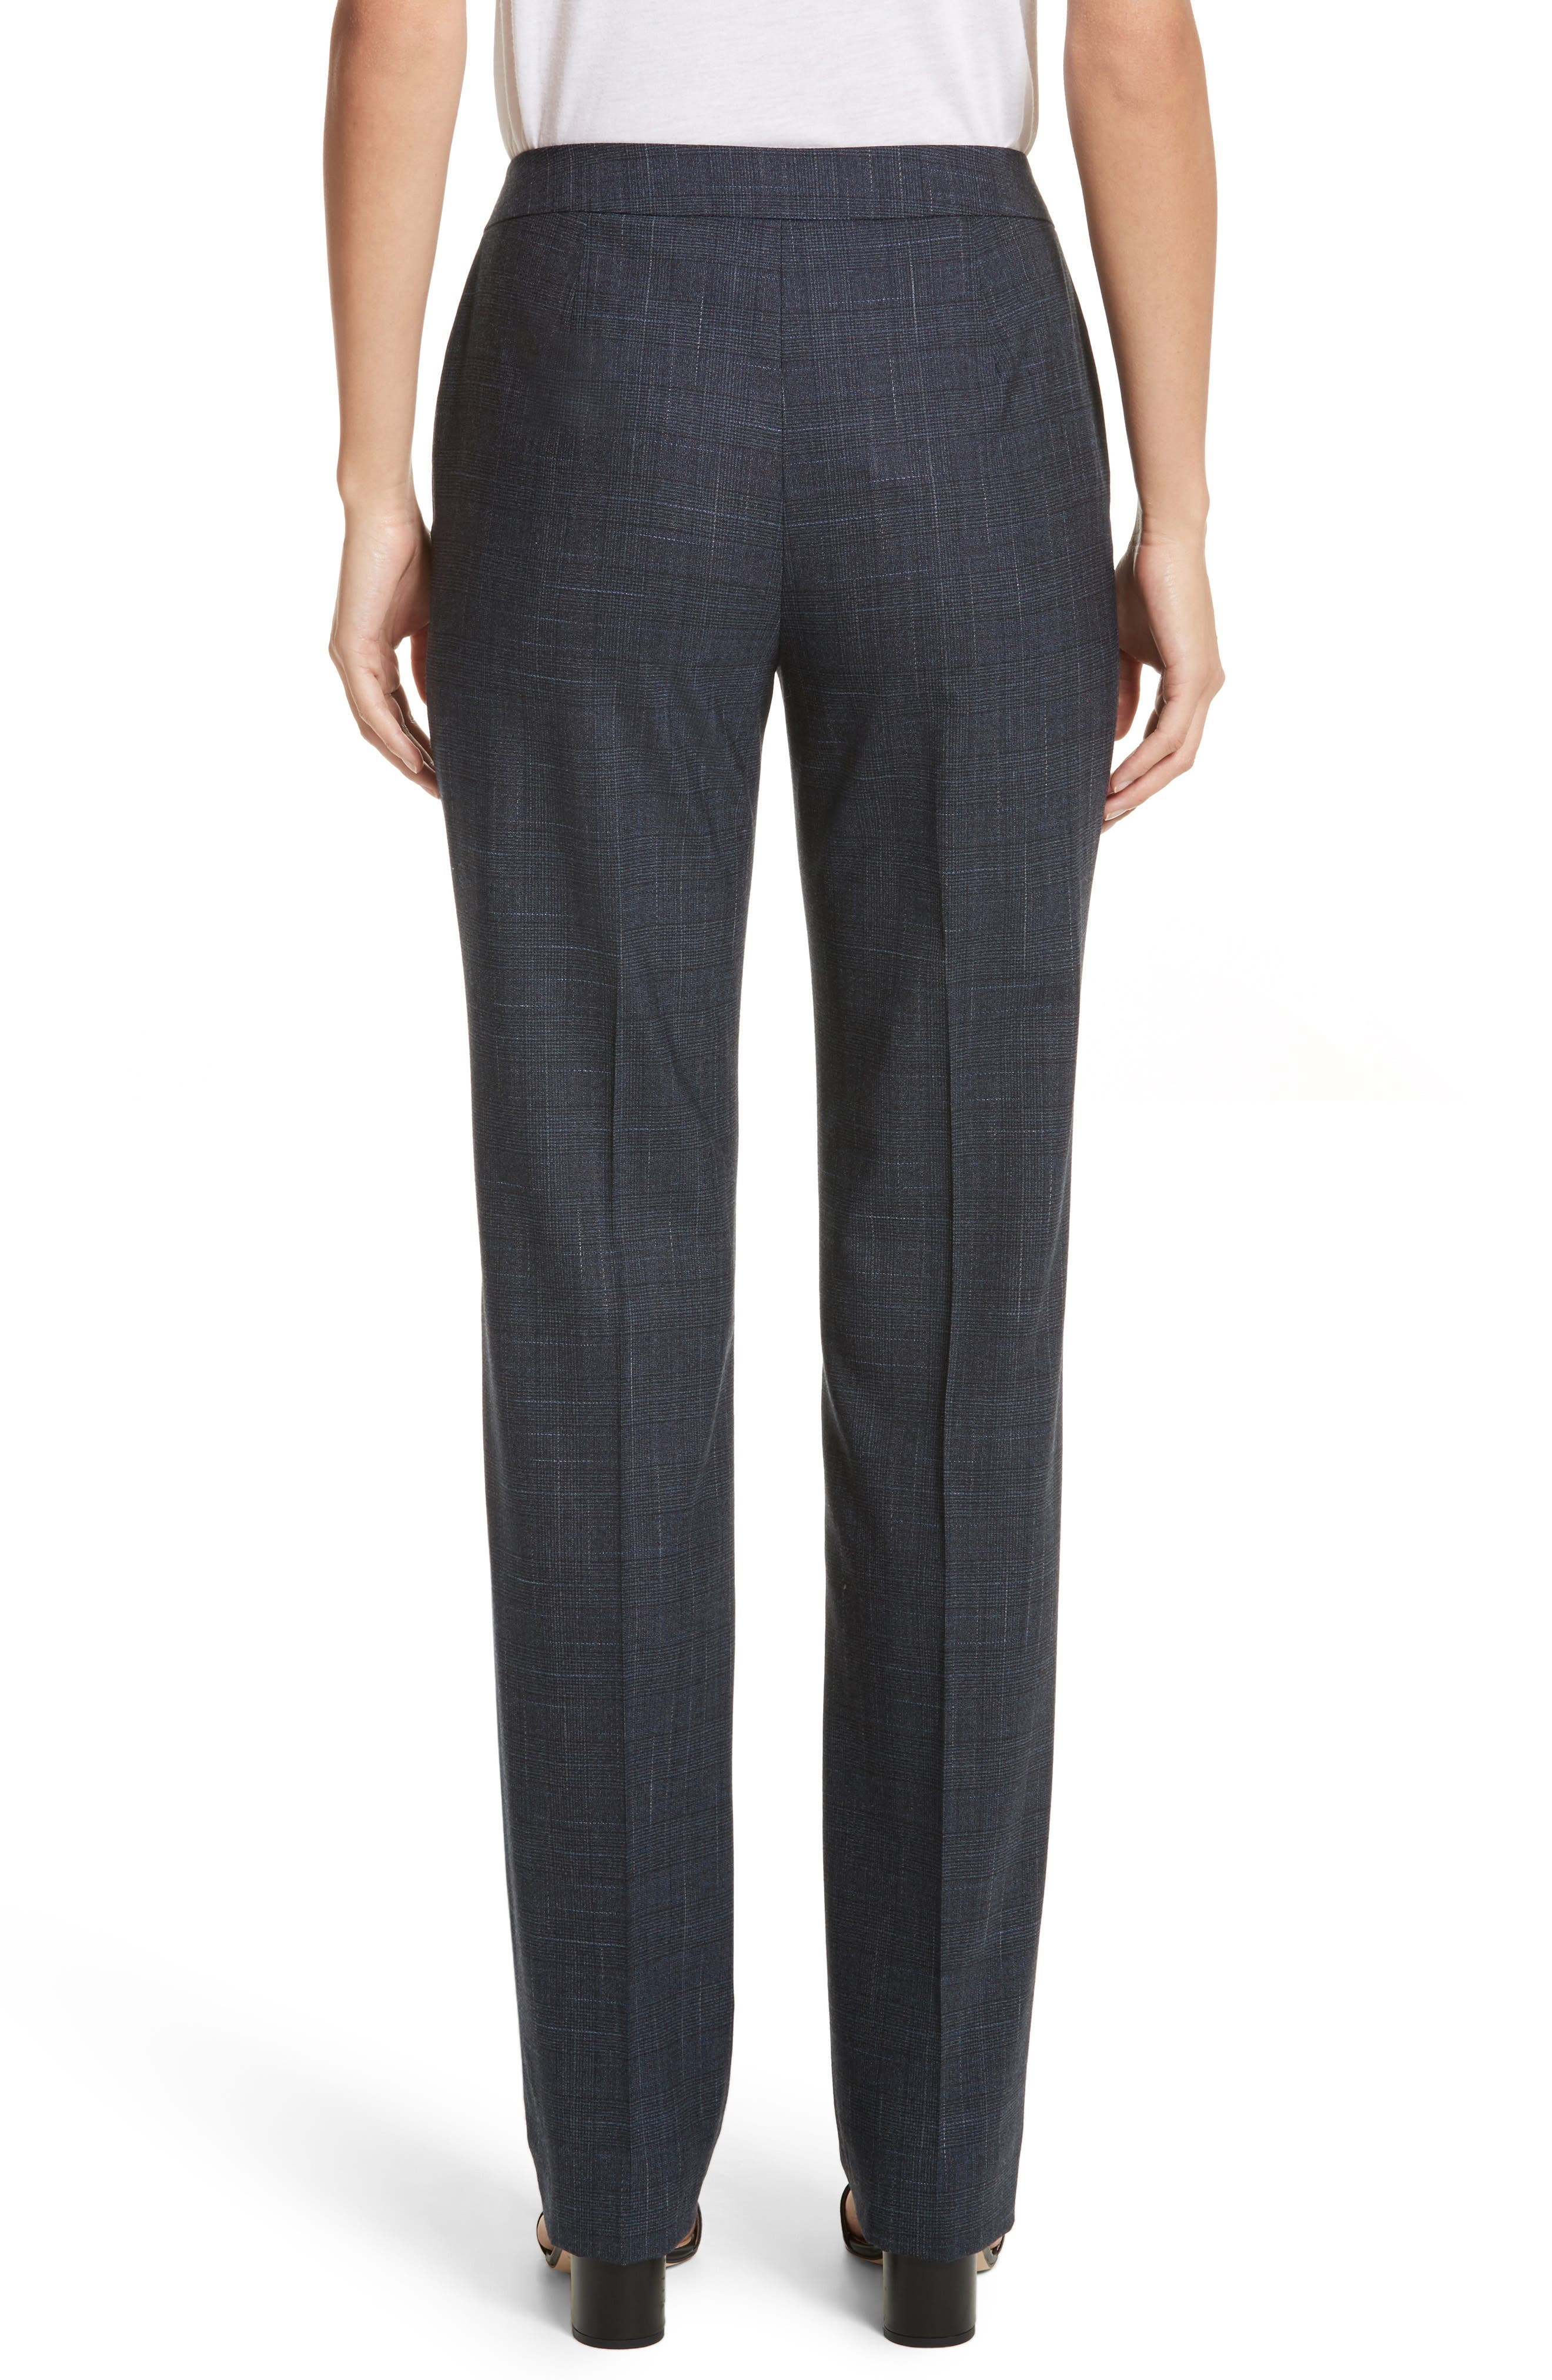 Barrow Stretch Wool Pants,                             Alternate thumbnail 2, color,                             Ink Multi